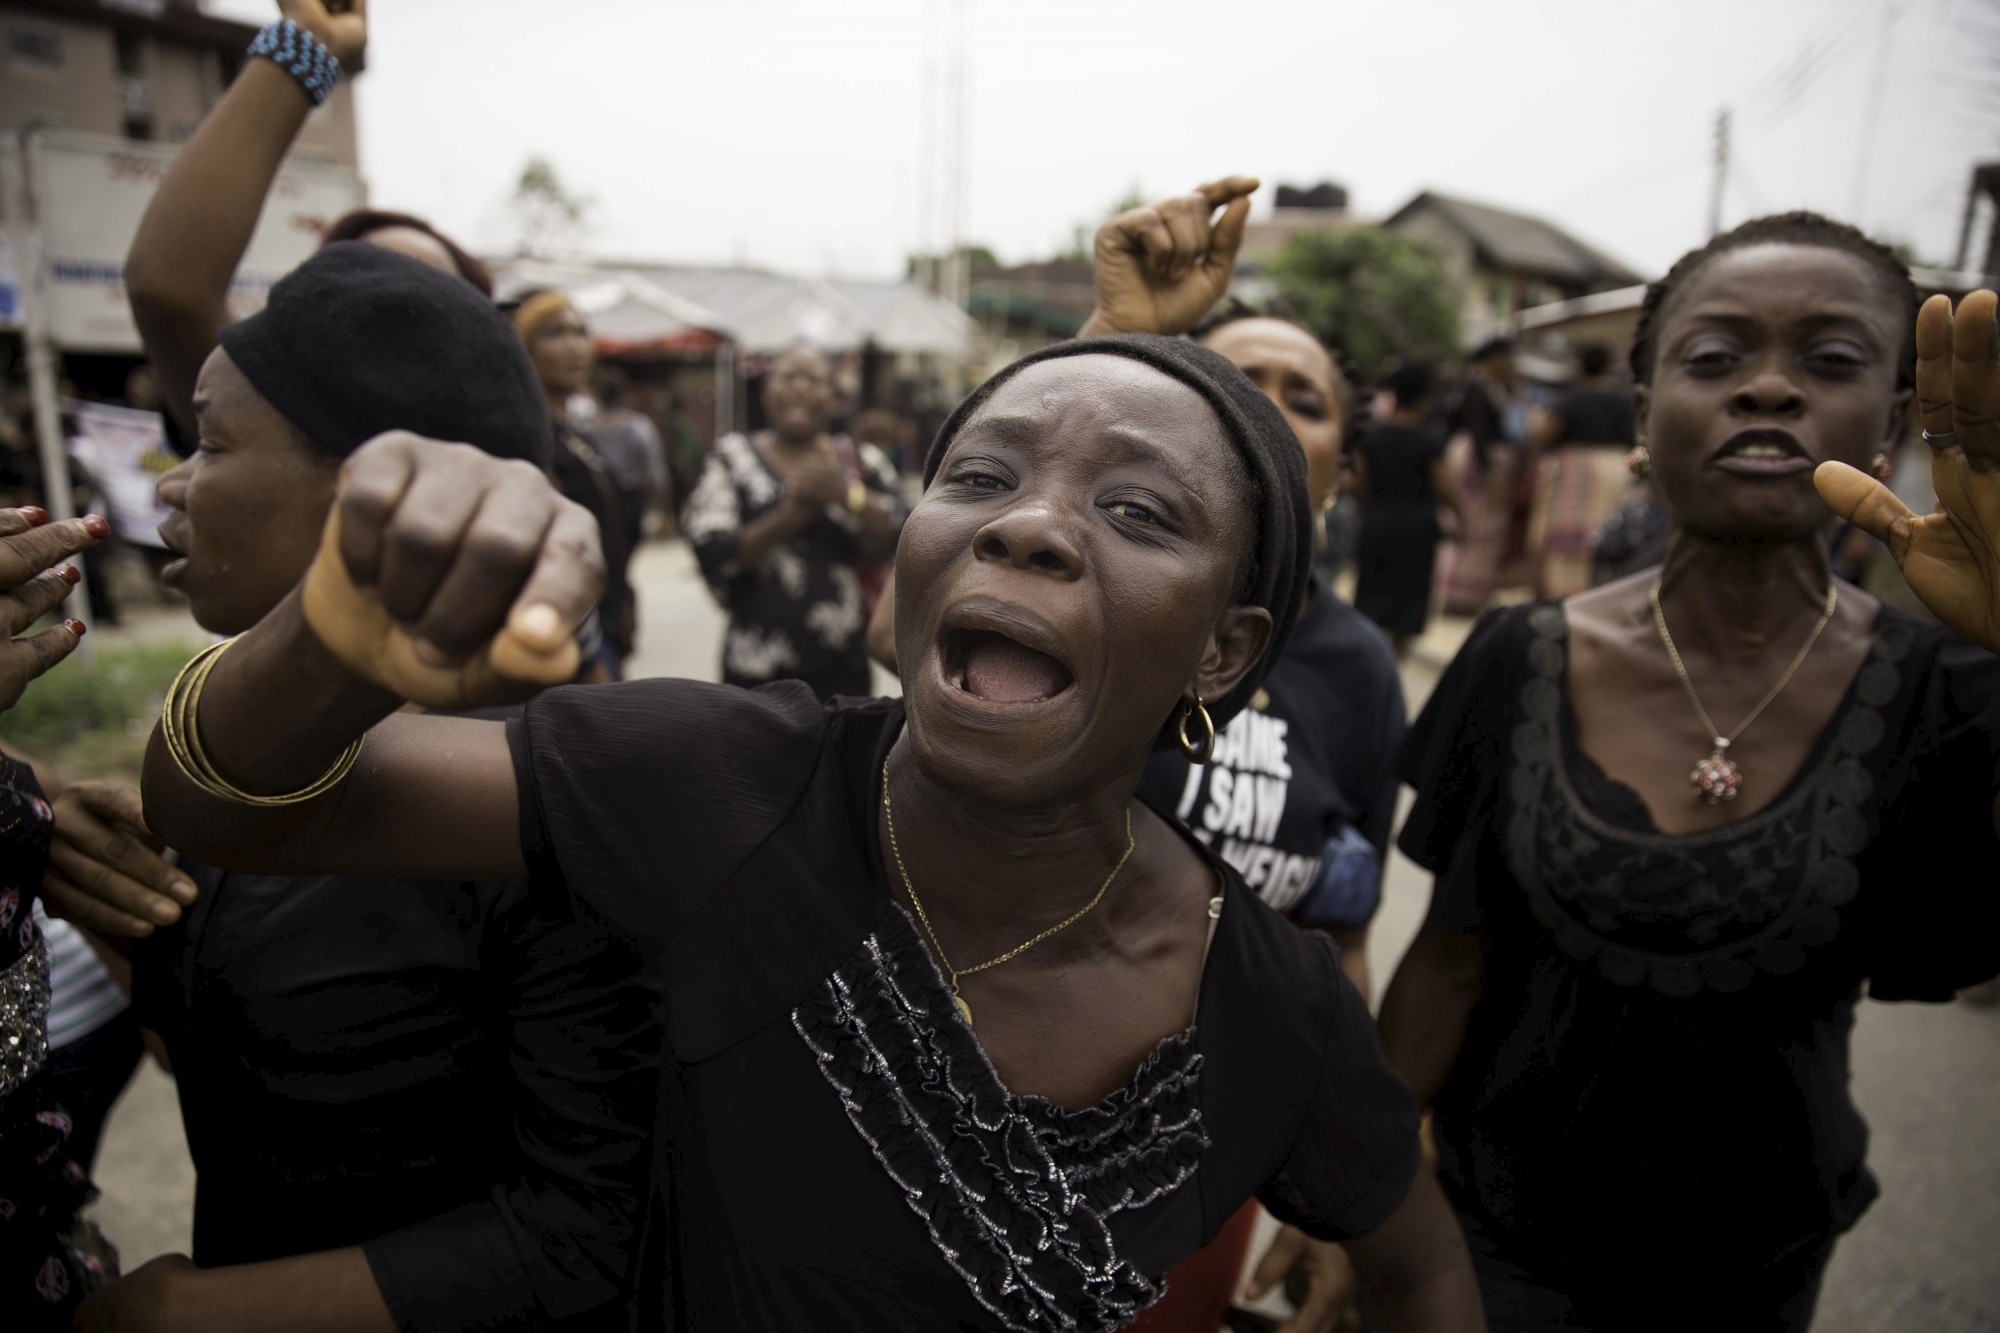 NIGERIA-WOMEN-PROTEST-Ventures-Africa-e1447219012476 - The Trent